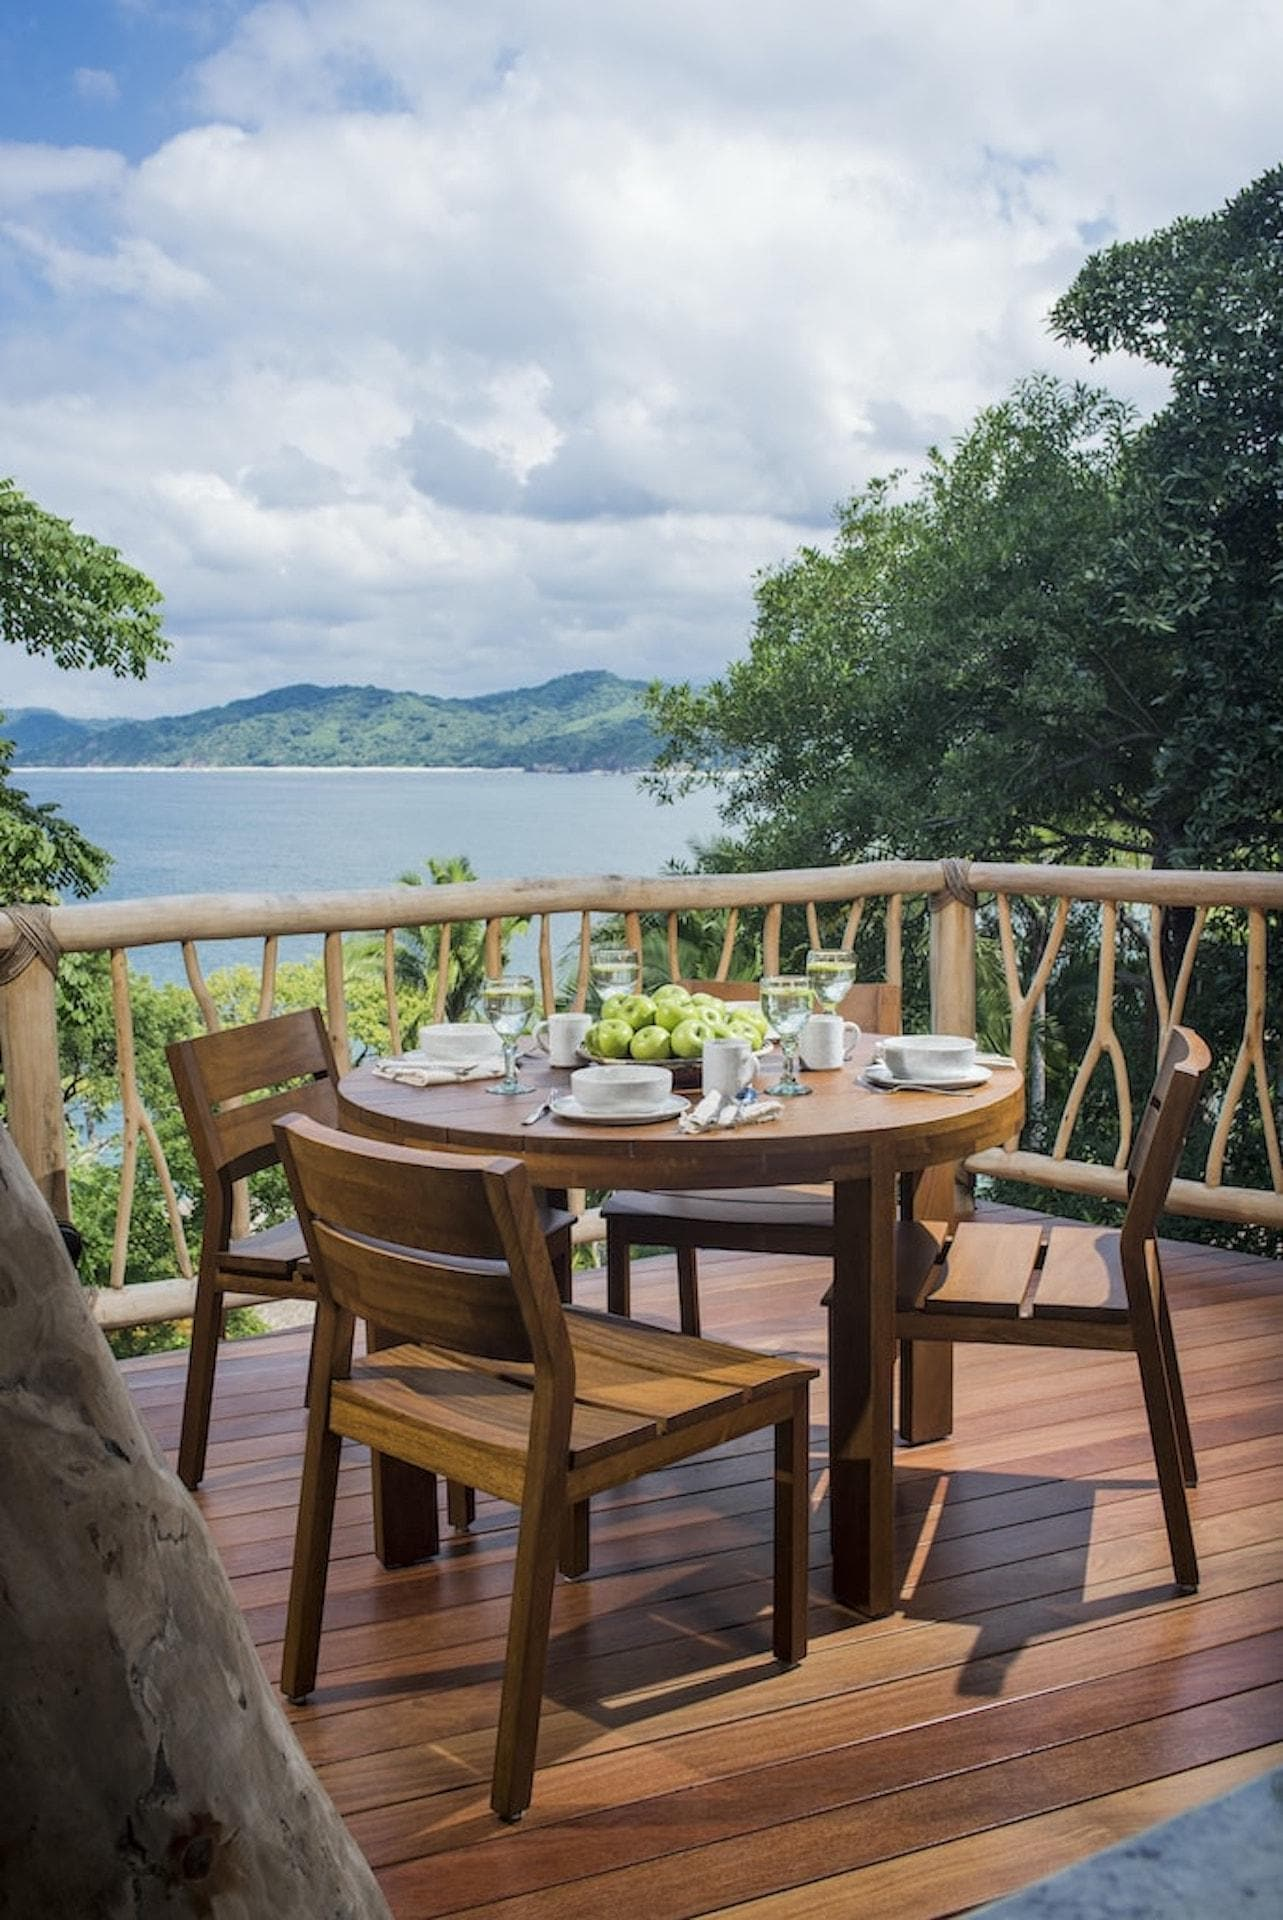 Property Image 2 - Serene Tree House with Views of Amazing Local Flora and Fauna